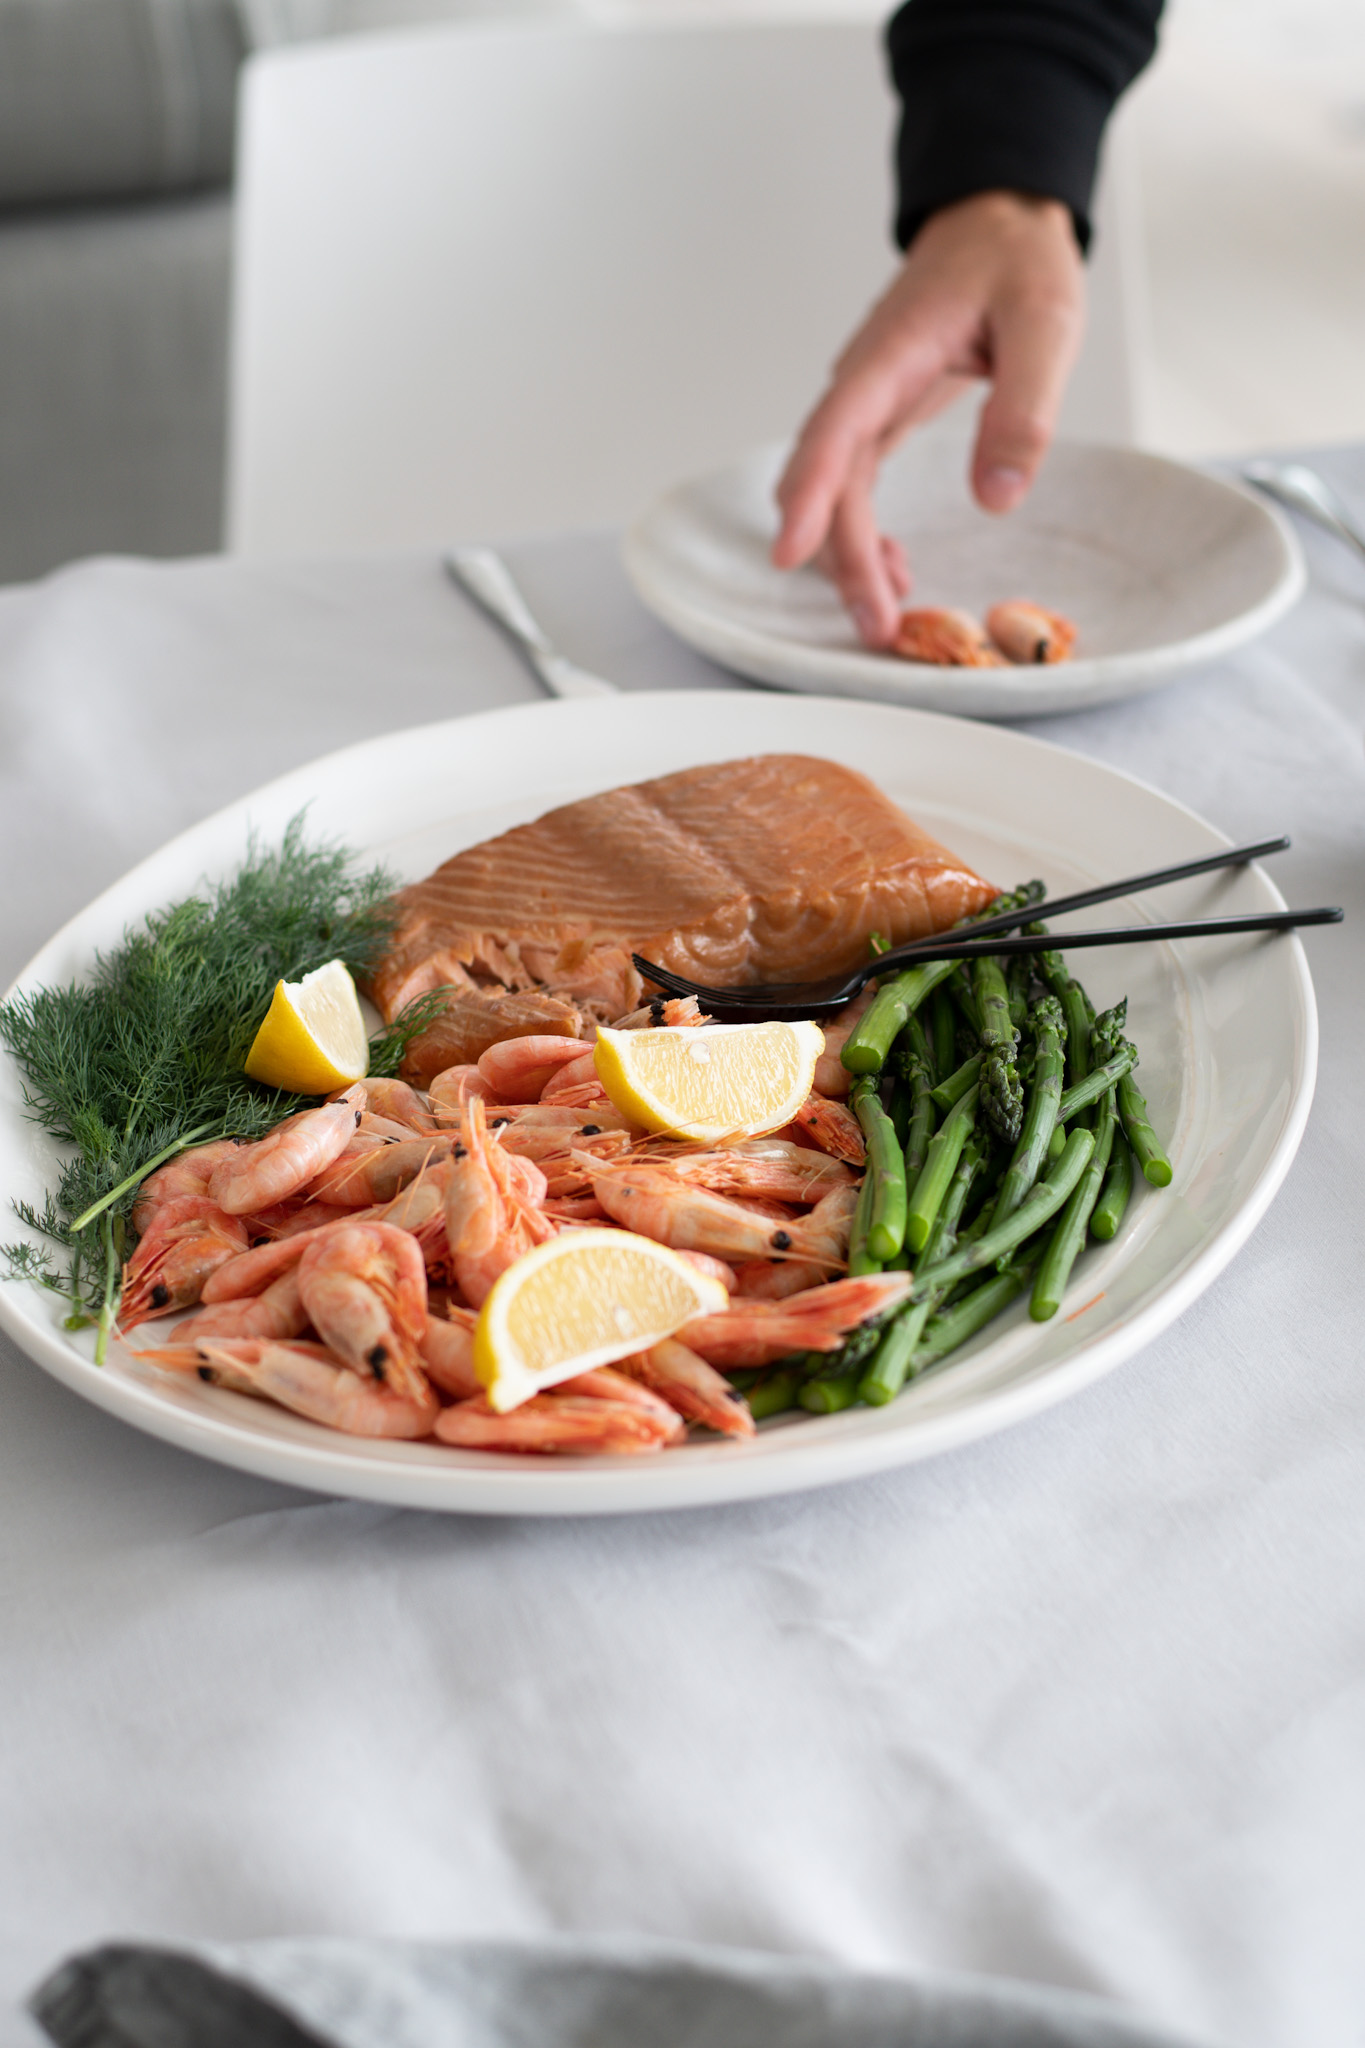 Hot smoked Salmon and North Atlantic Prawns & Asparagus